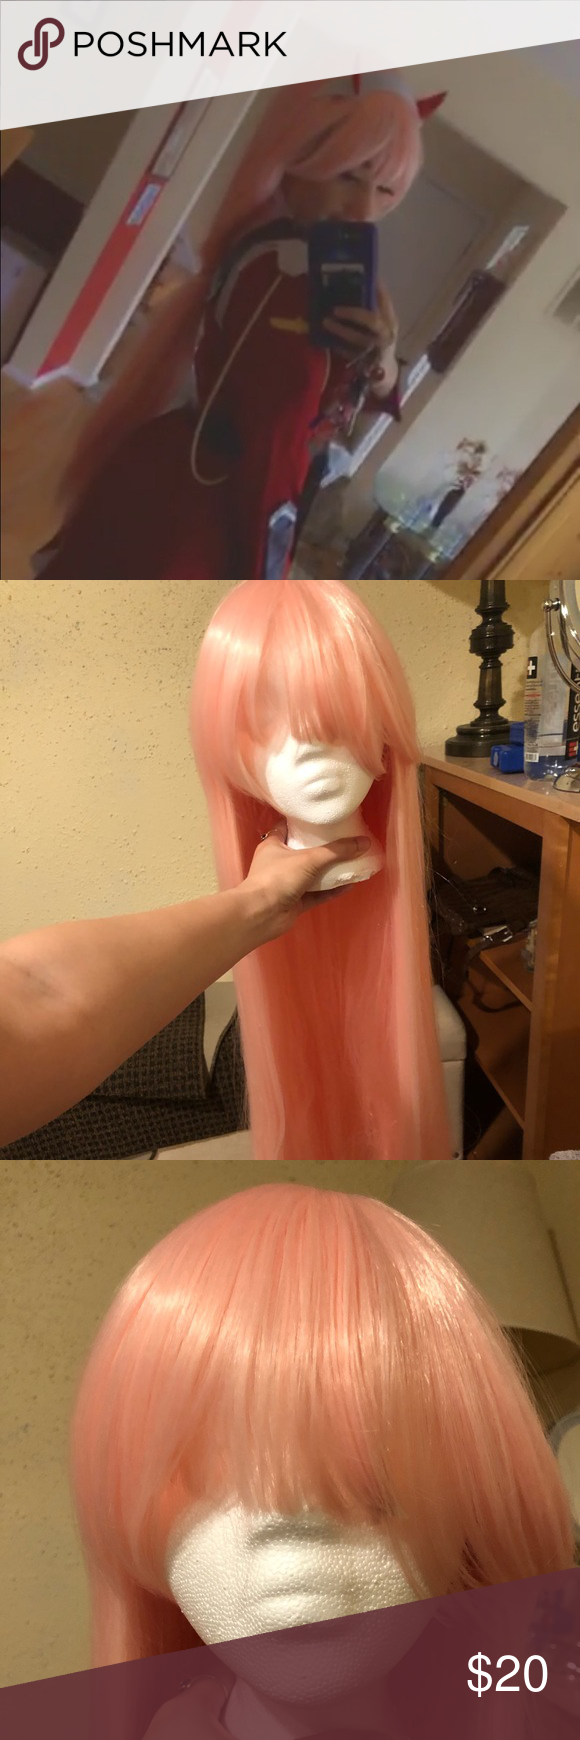 Long pink synthetic wig Used it for a ZeroTwo (002) cosplay for Halloween. *Sold as is*, a bit tangled at the bottom. Selling with wig head and a wig brush. Other